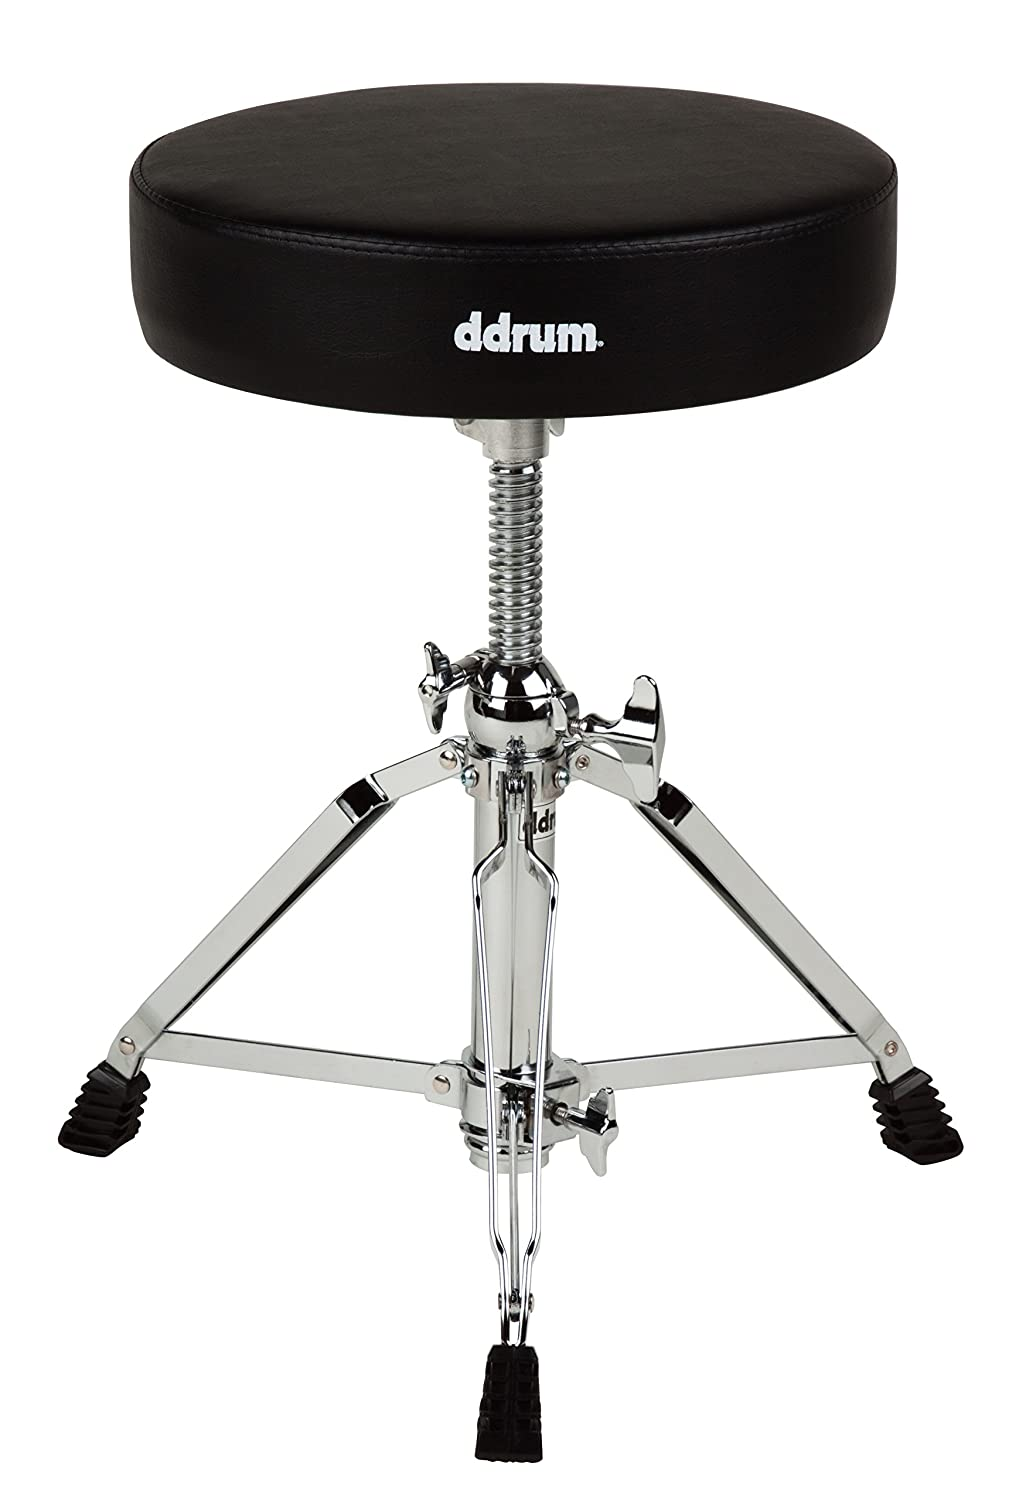 DDrum DRX Series DRXT799 DRX Heavy Duty Throne Percussion Holder